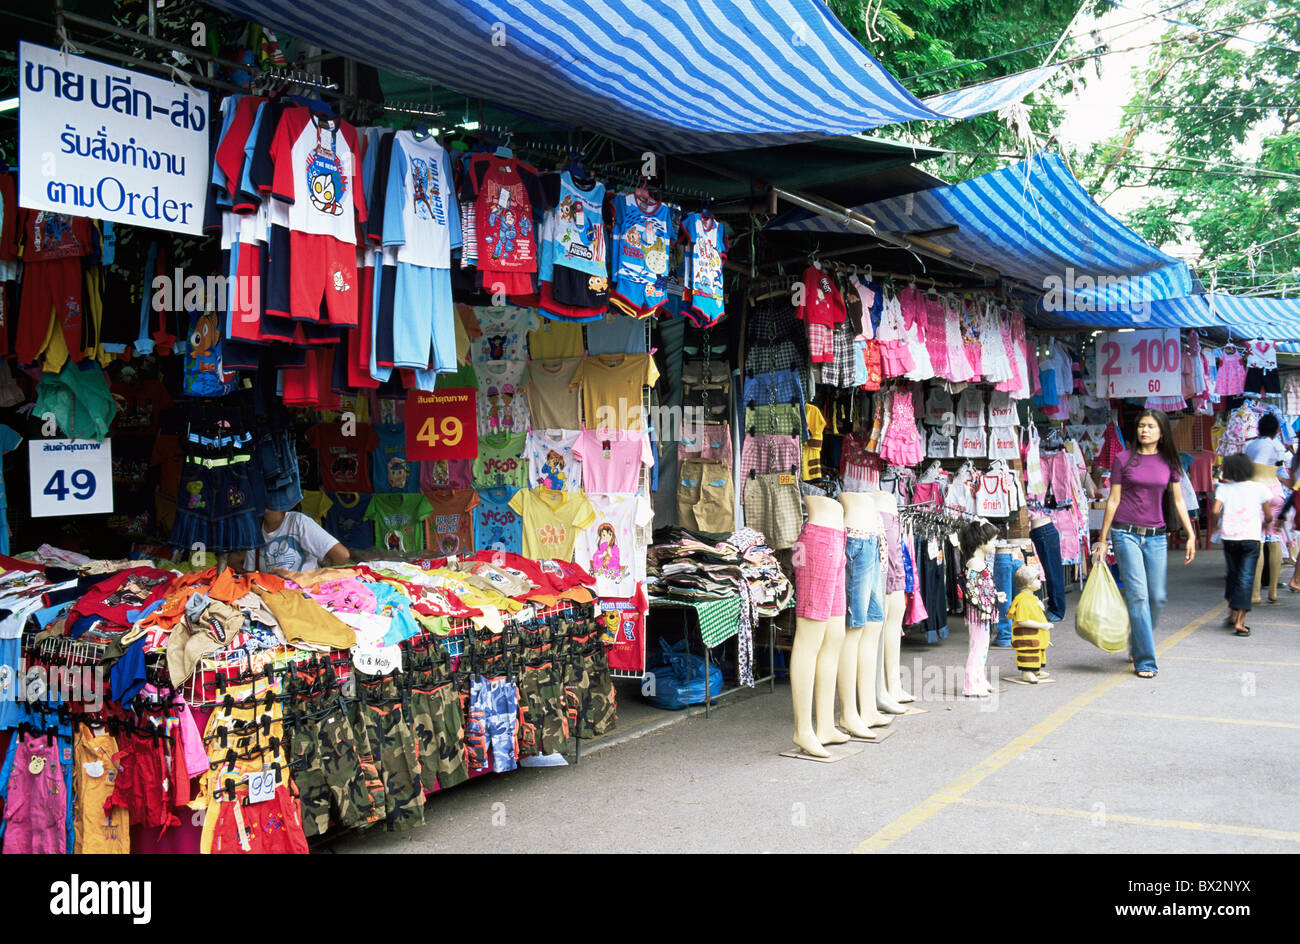 The Must Visit Spots in Chatuchak Weekend Market - The